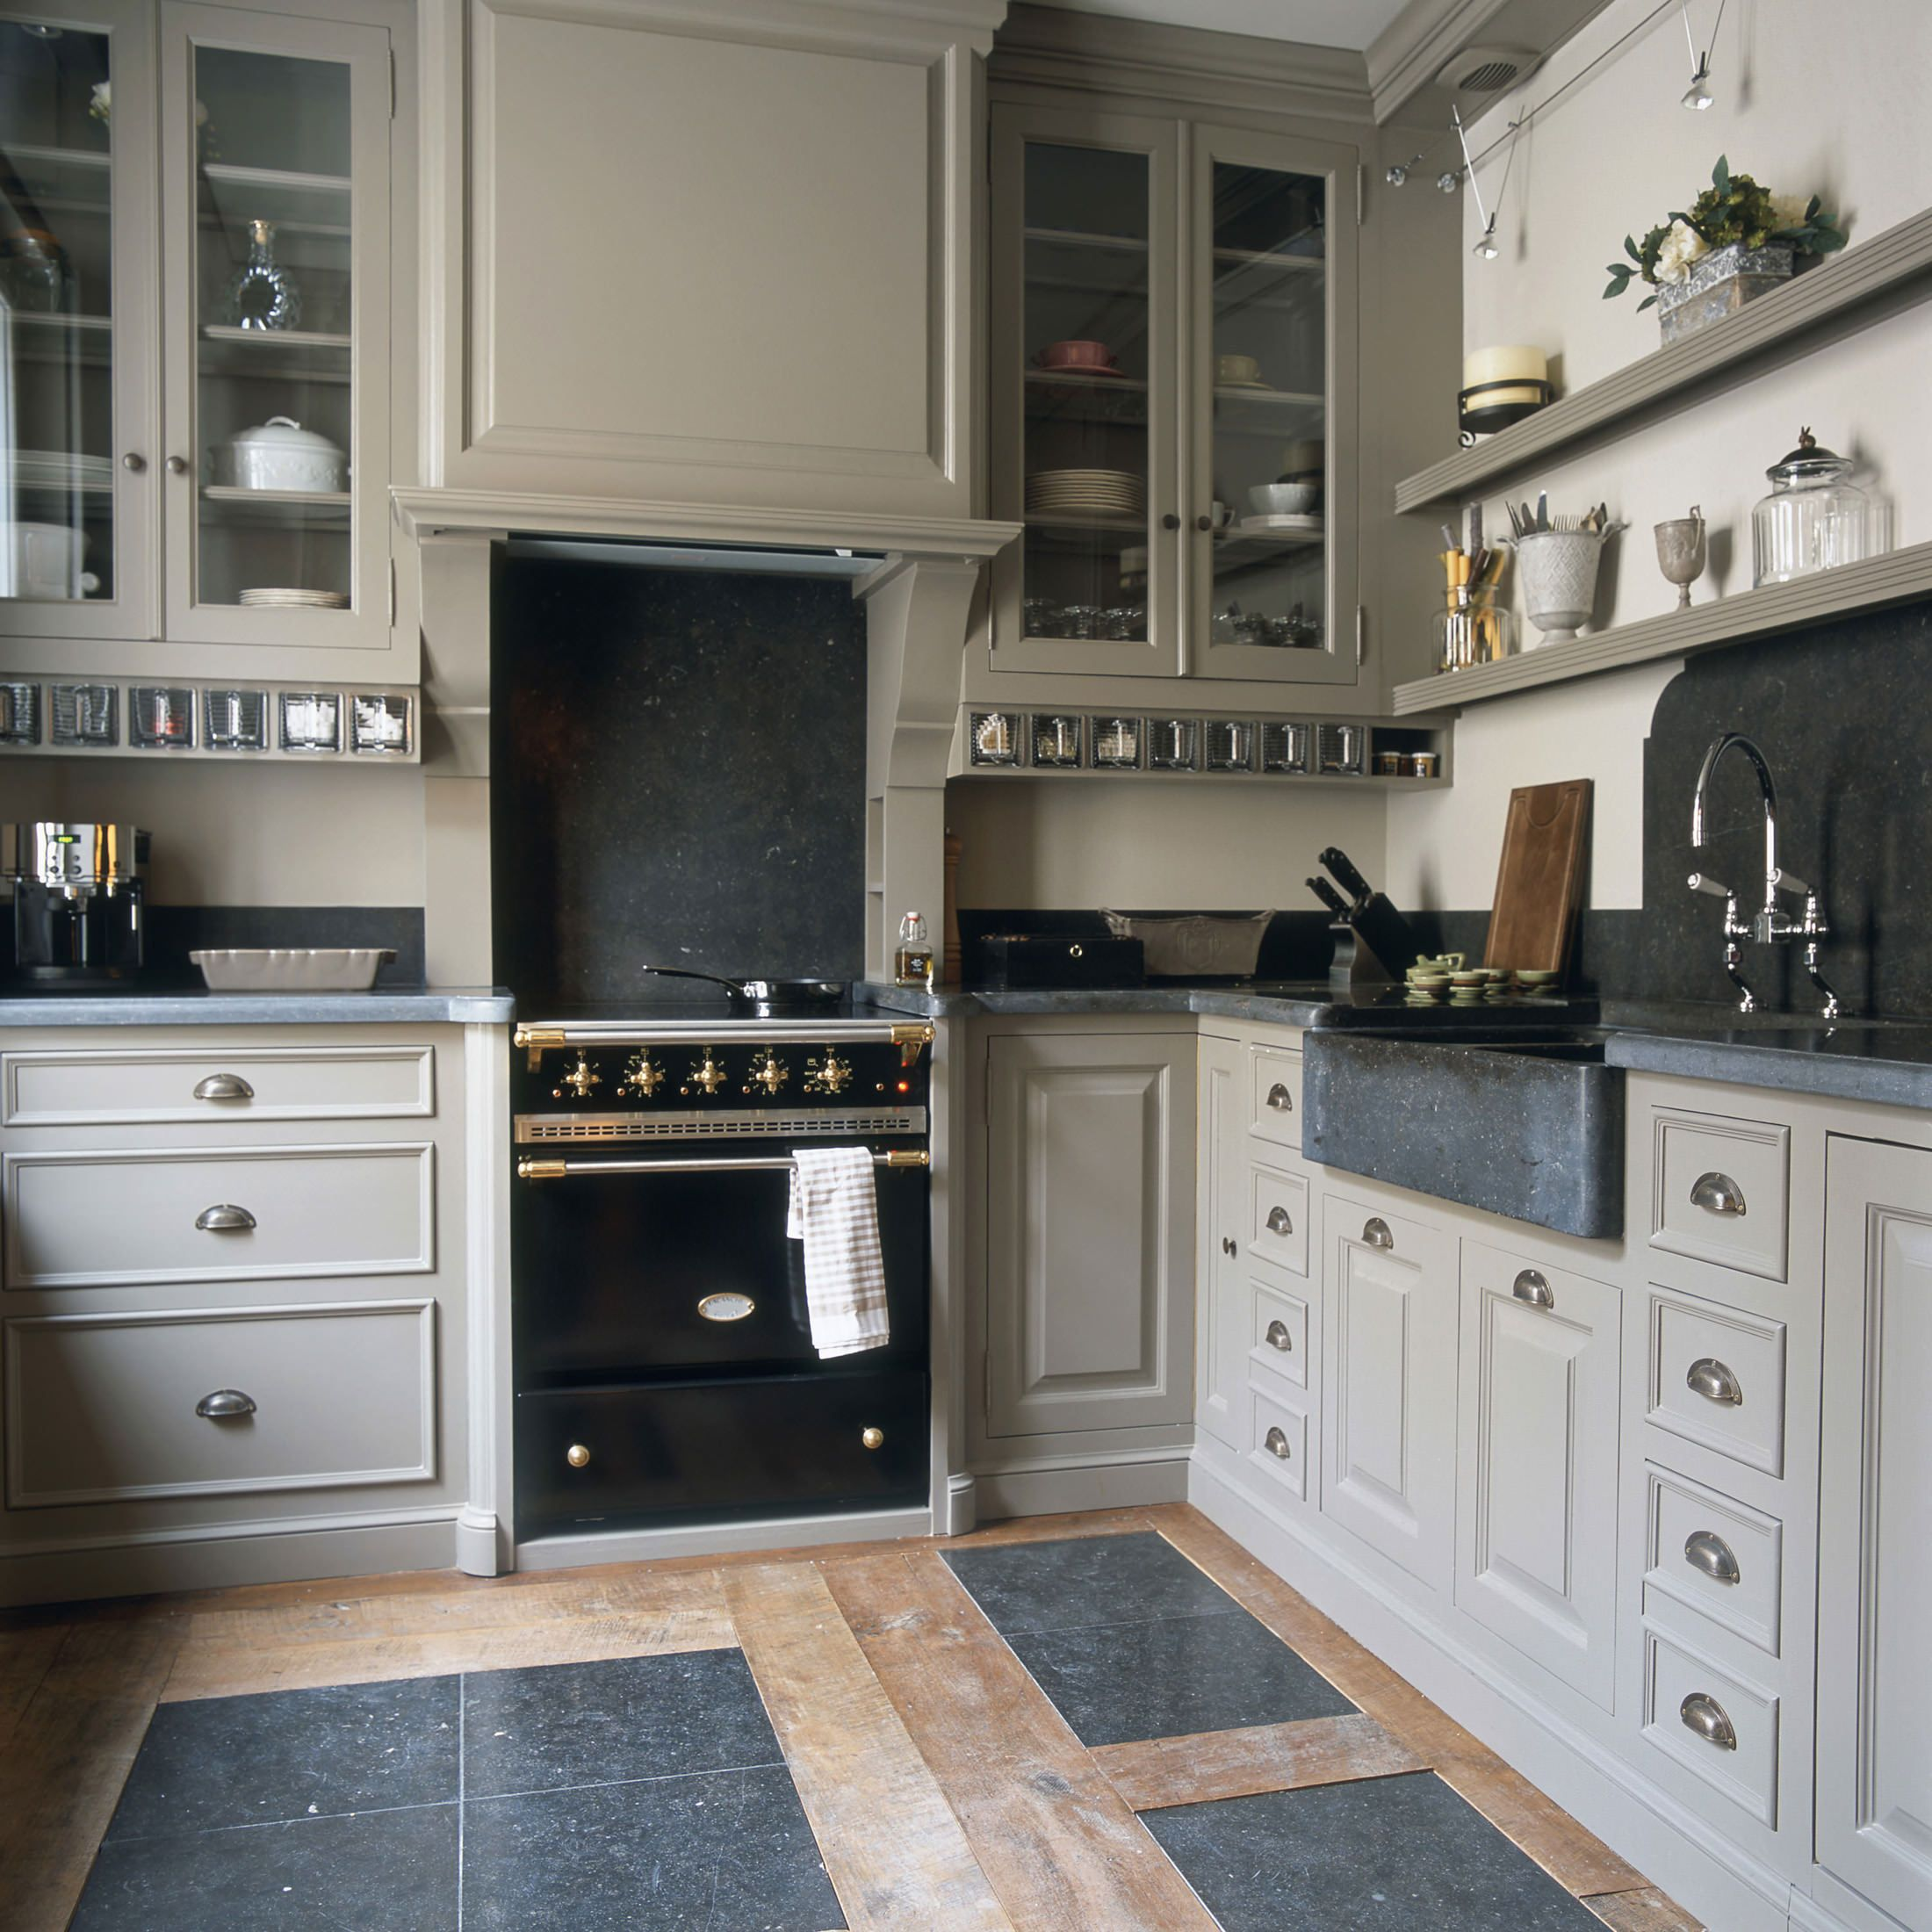 Travail Kitchen: Made-to-measure Painted Wood Kitchen, Sideboards, Bespoke